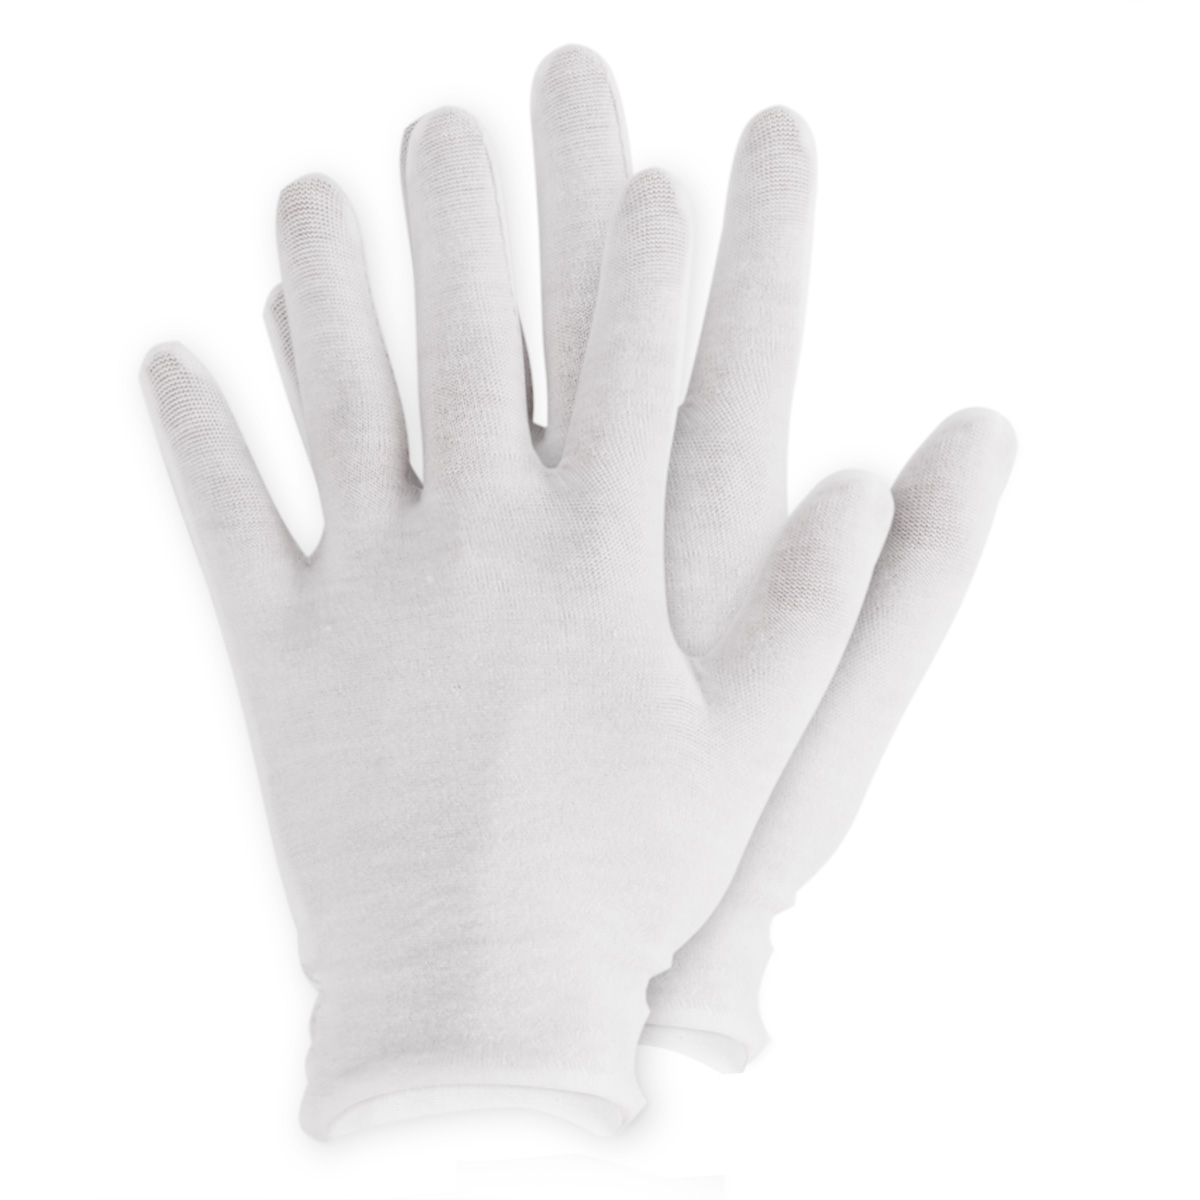 Extra Large Size Cotton Gloves,6 Pairs White Cotton Gloves Cloth Serving Gloves for Eczema Moisturizing Dry Hands Coin Jewelry Silver Archival Costume Inspection